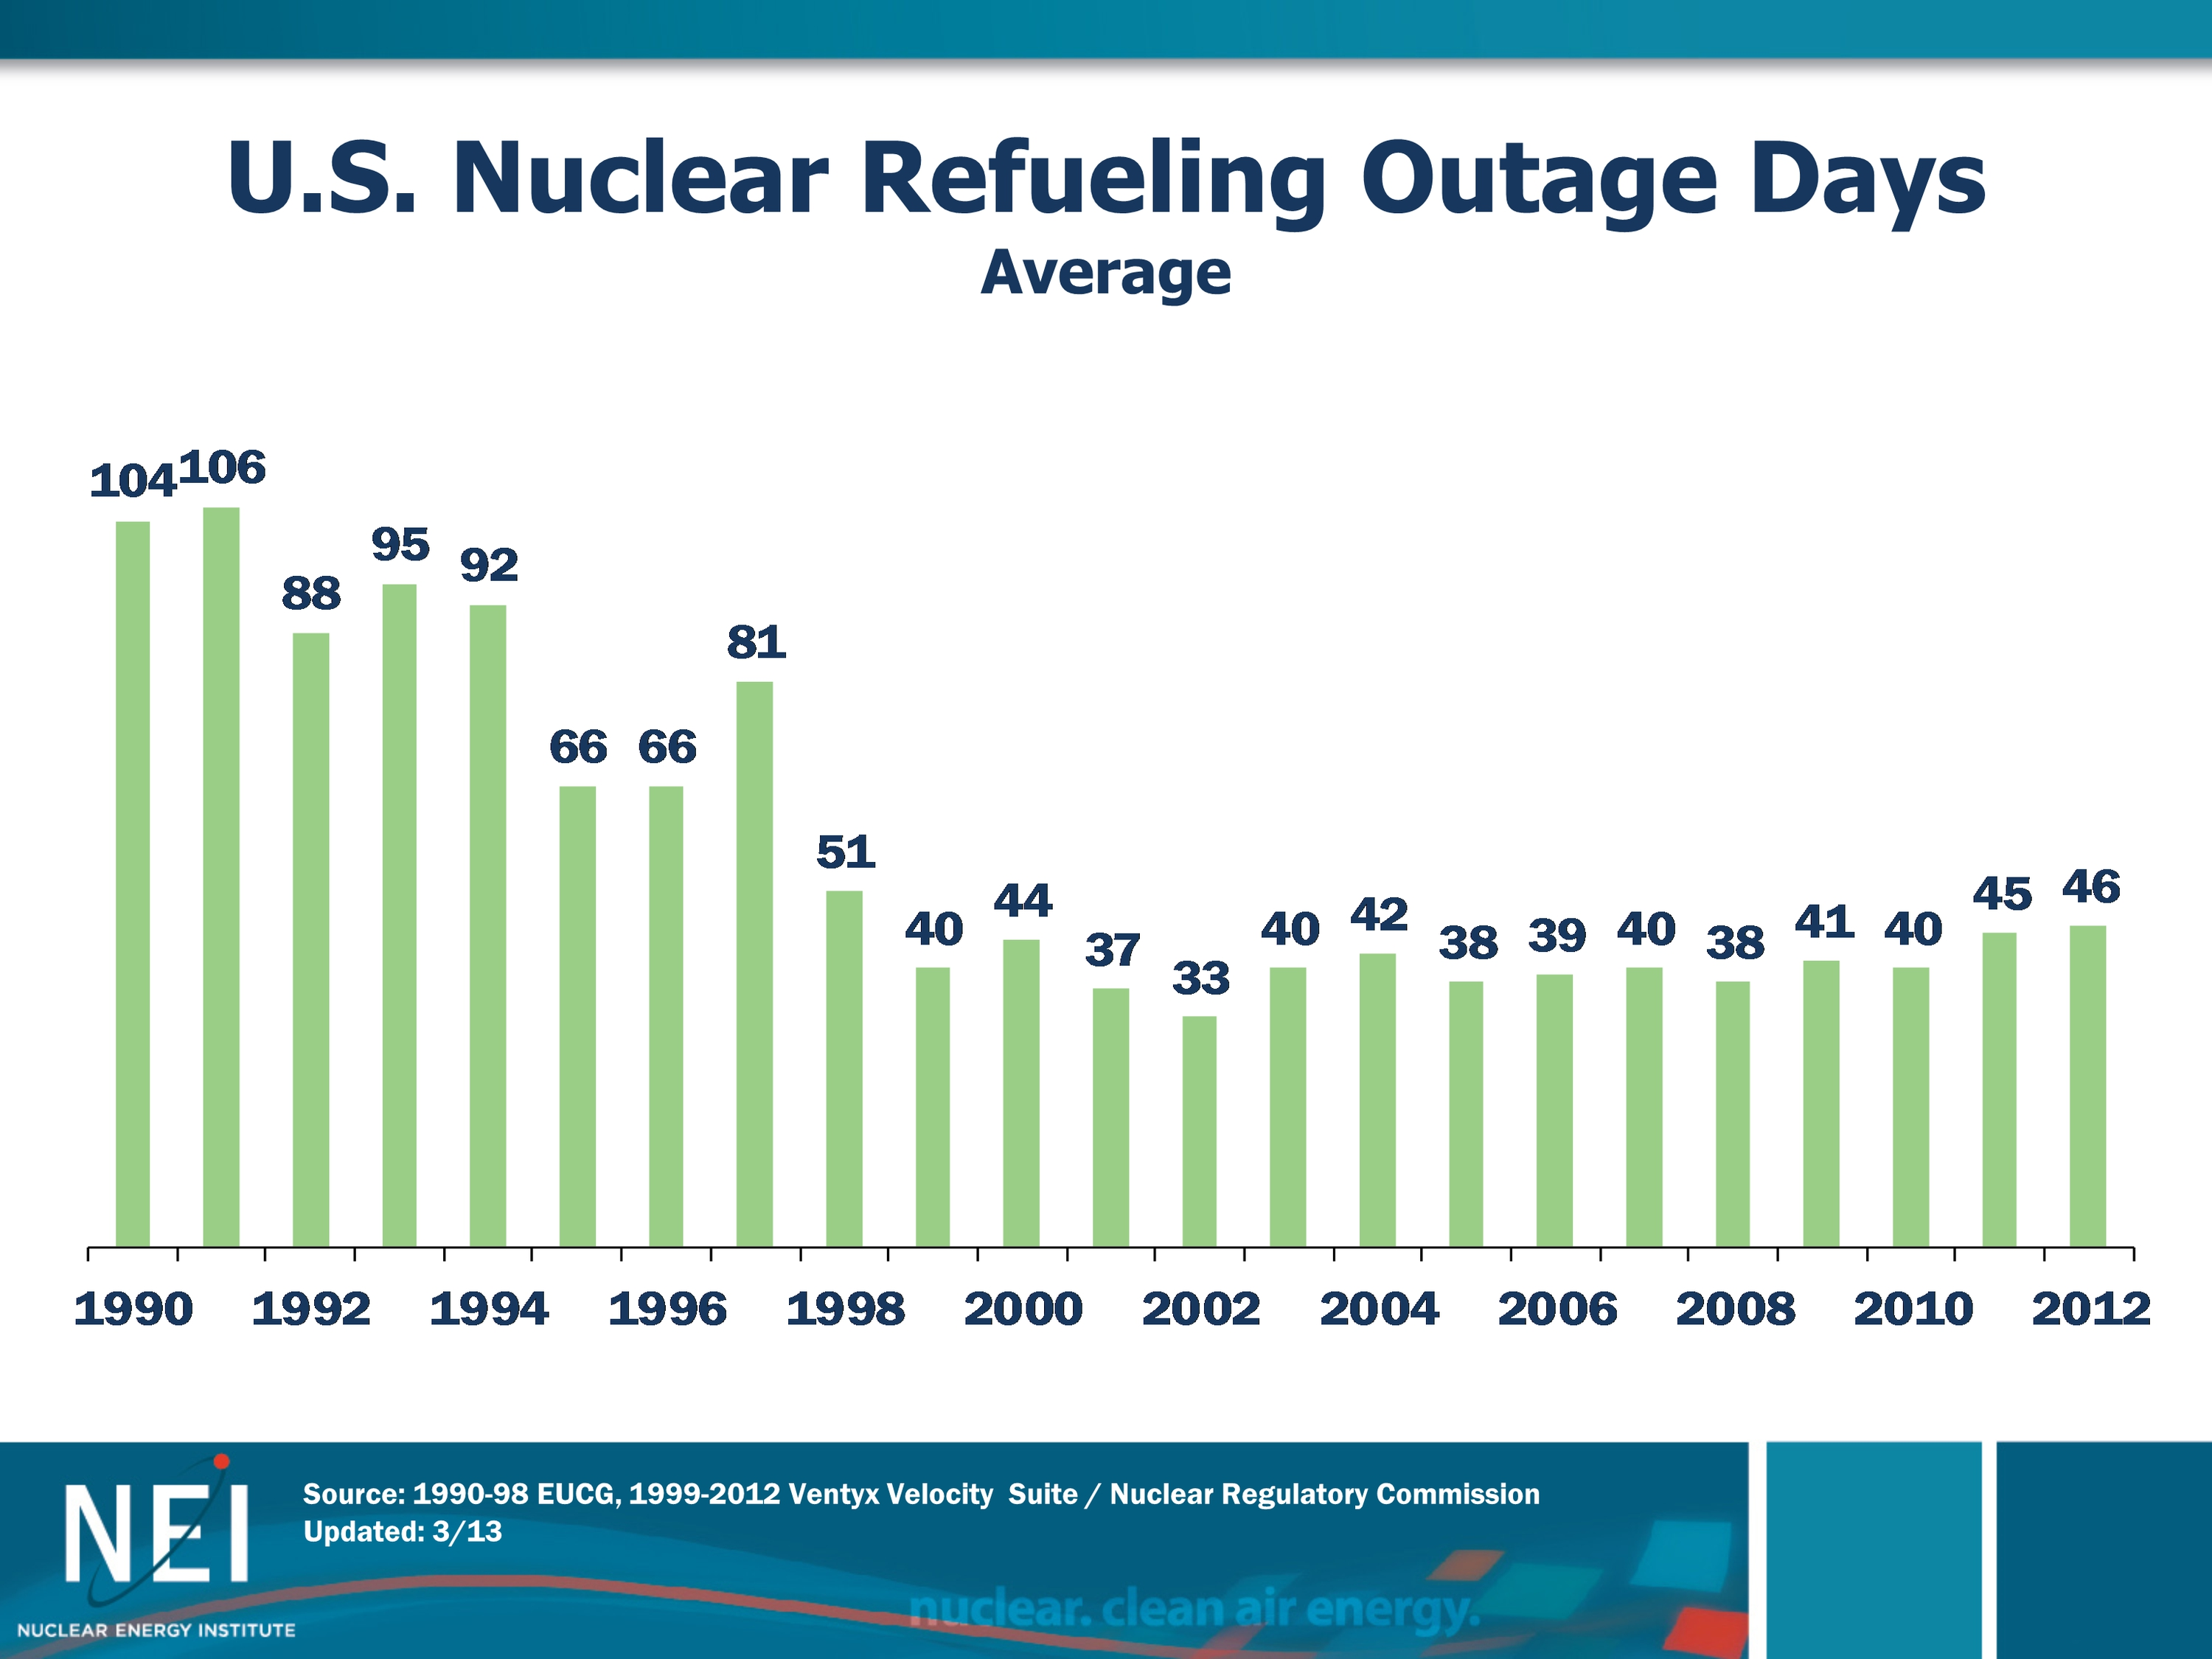 US-Nuclear-Refueling-Outage-Days0011.JPG